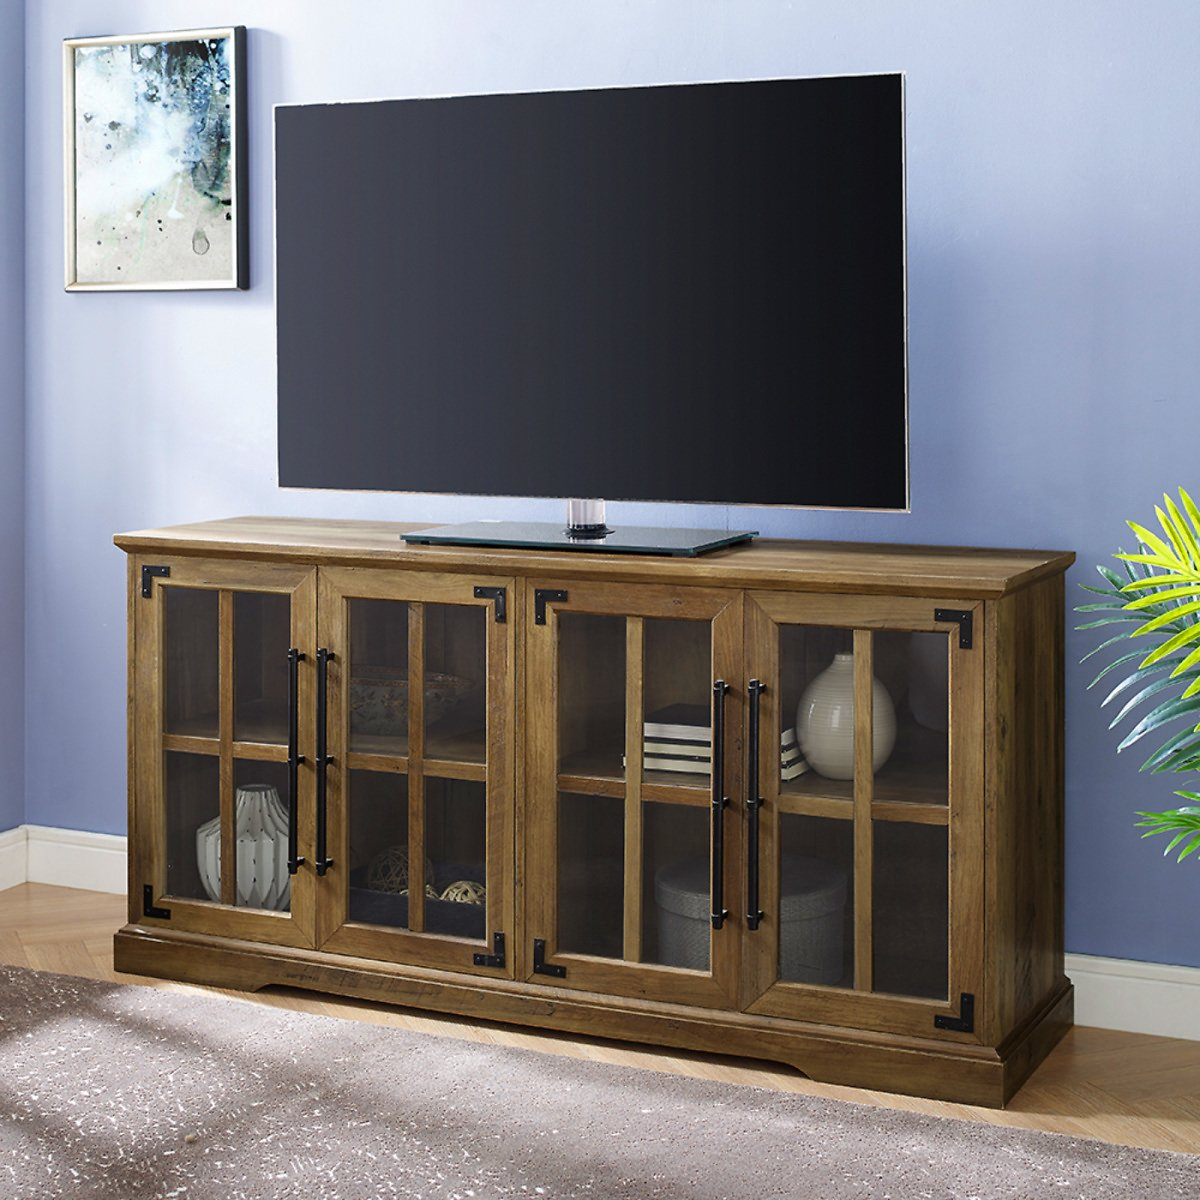 Manor Park Farmhouse TV Stand for TVs Up to 65